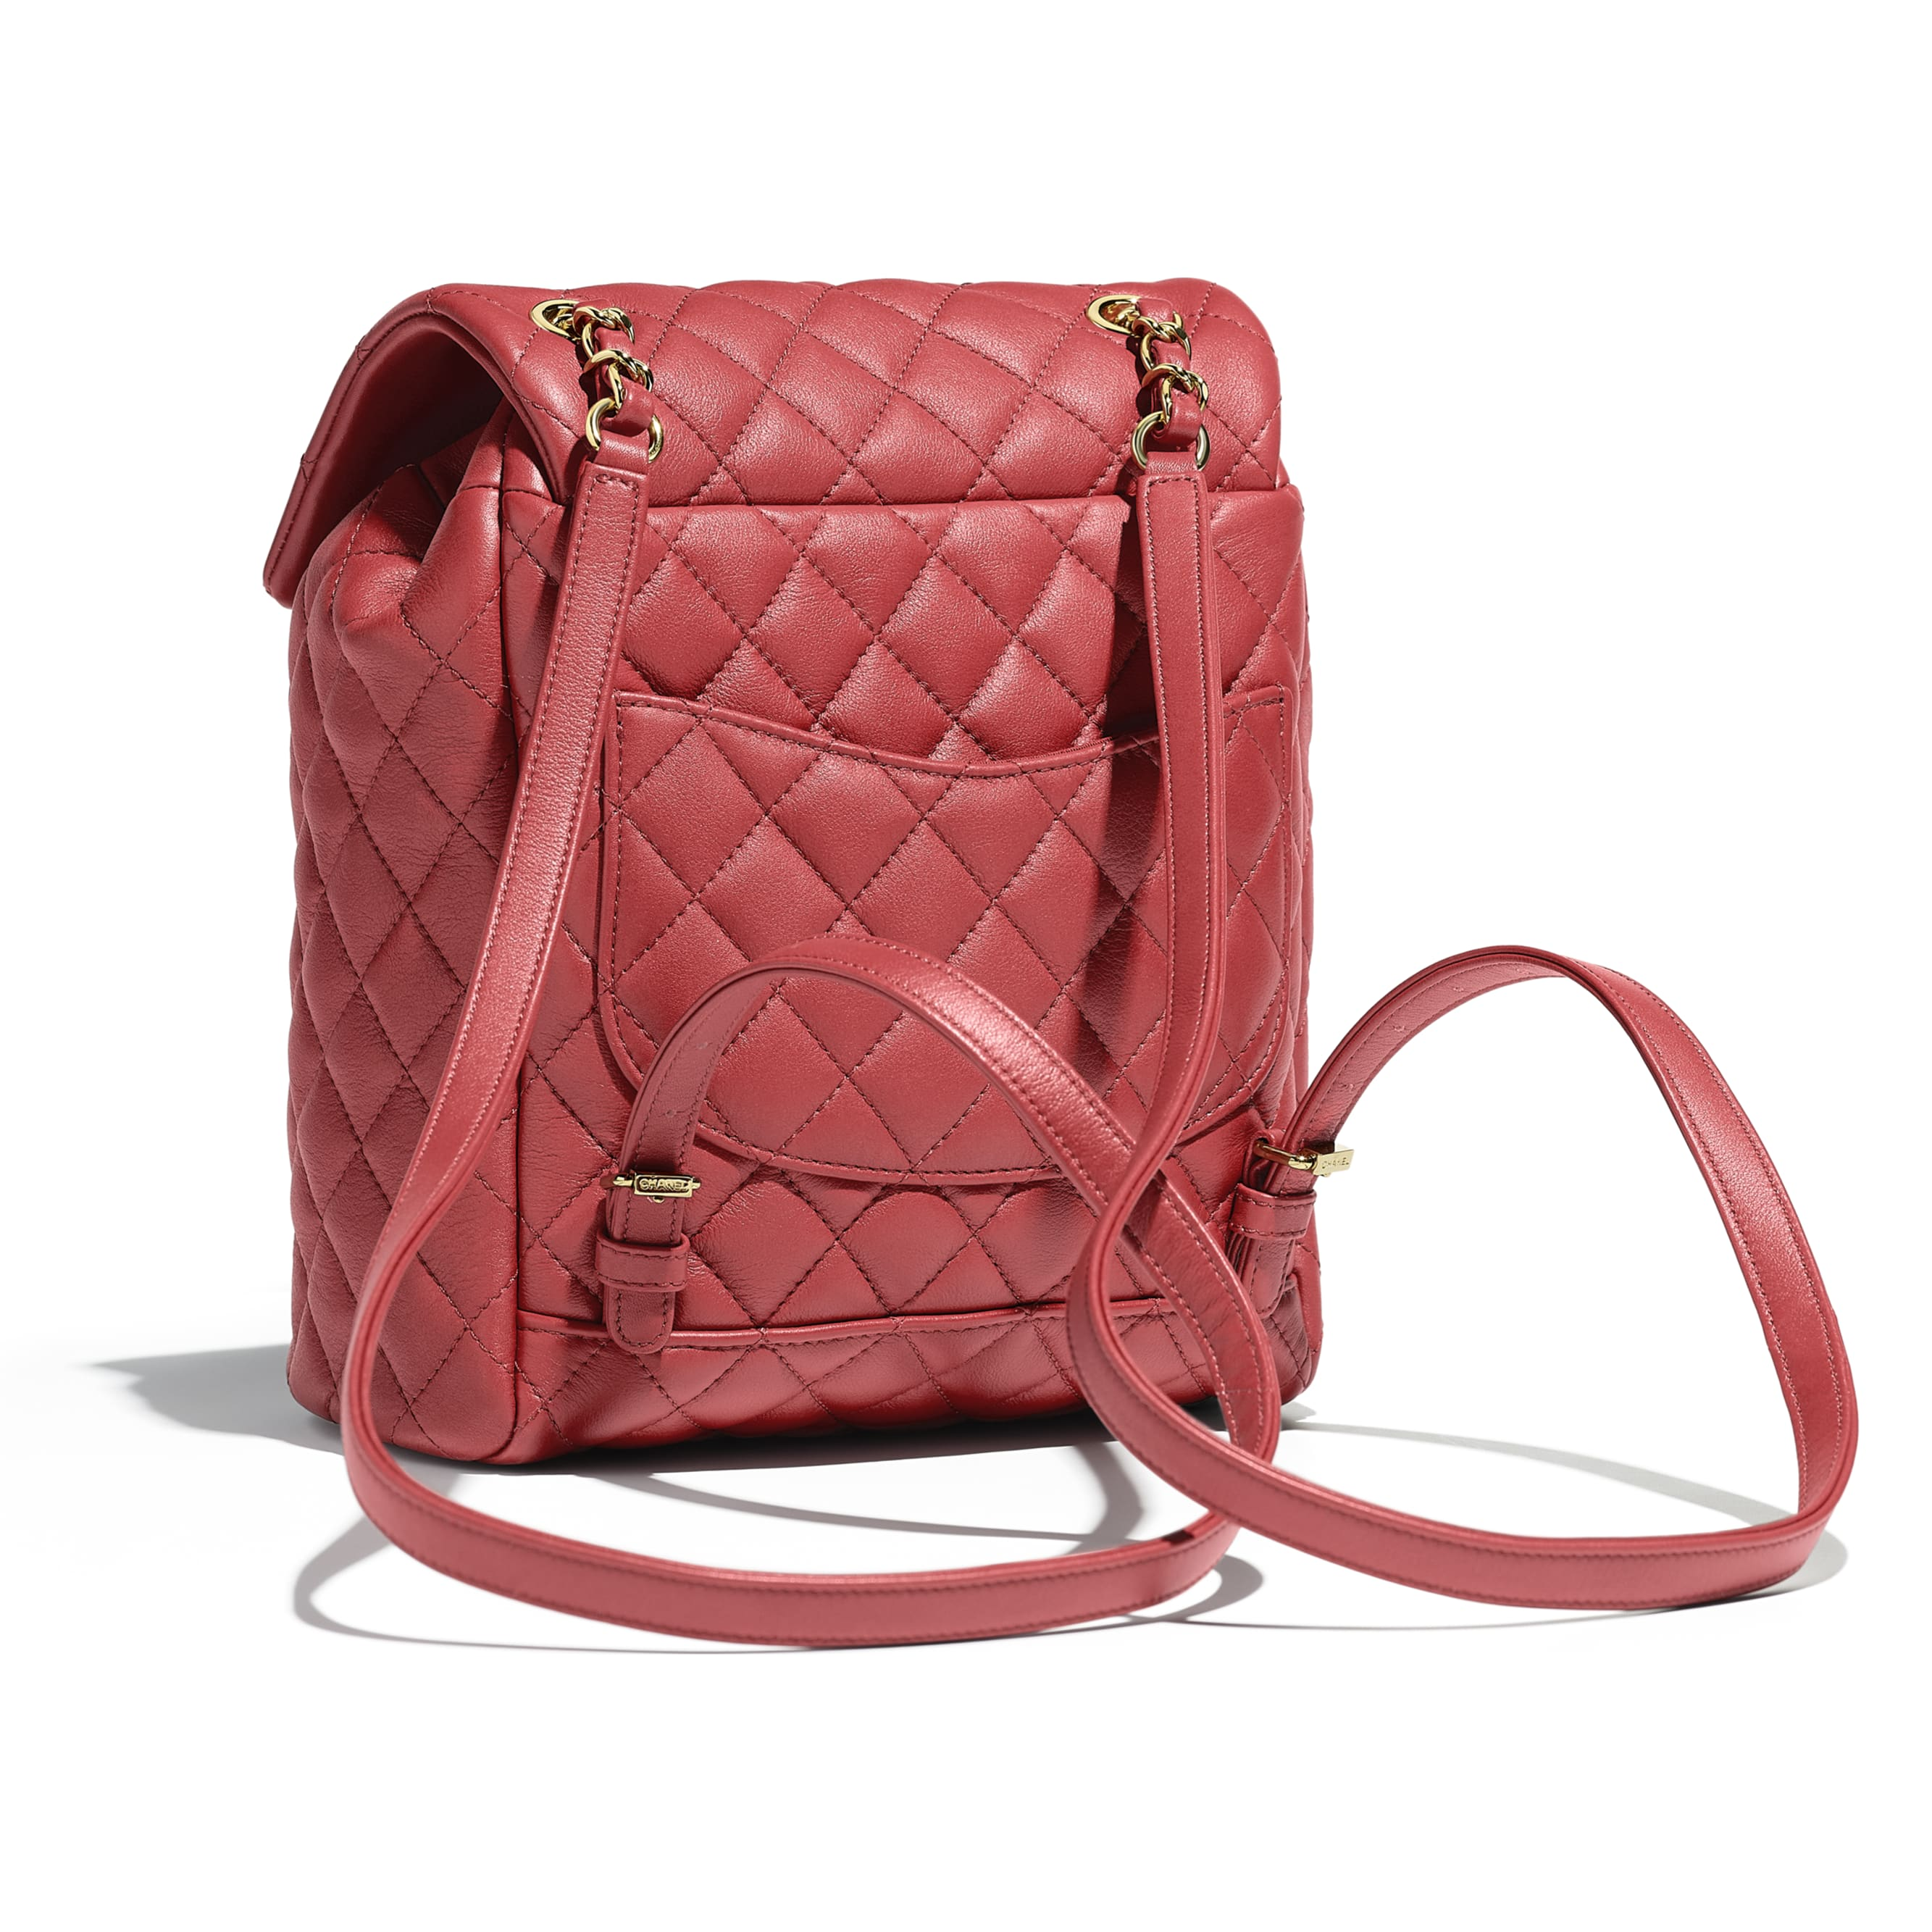 Backpack - Red - Calfskin & Gold-Tone Metal - Alternative view - see standard sized version